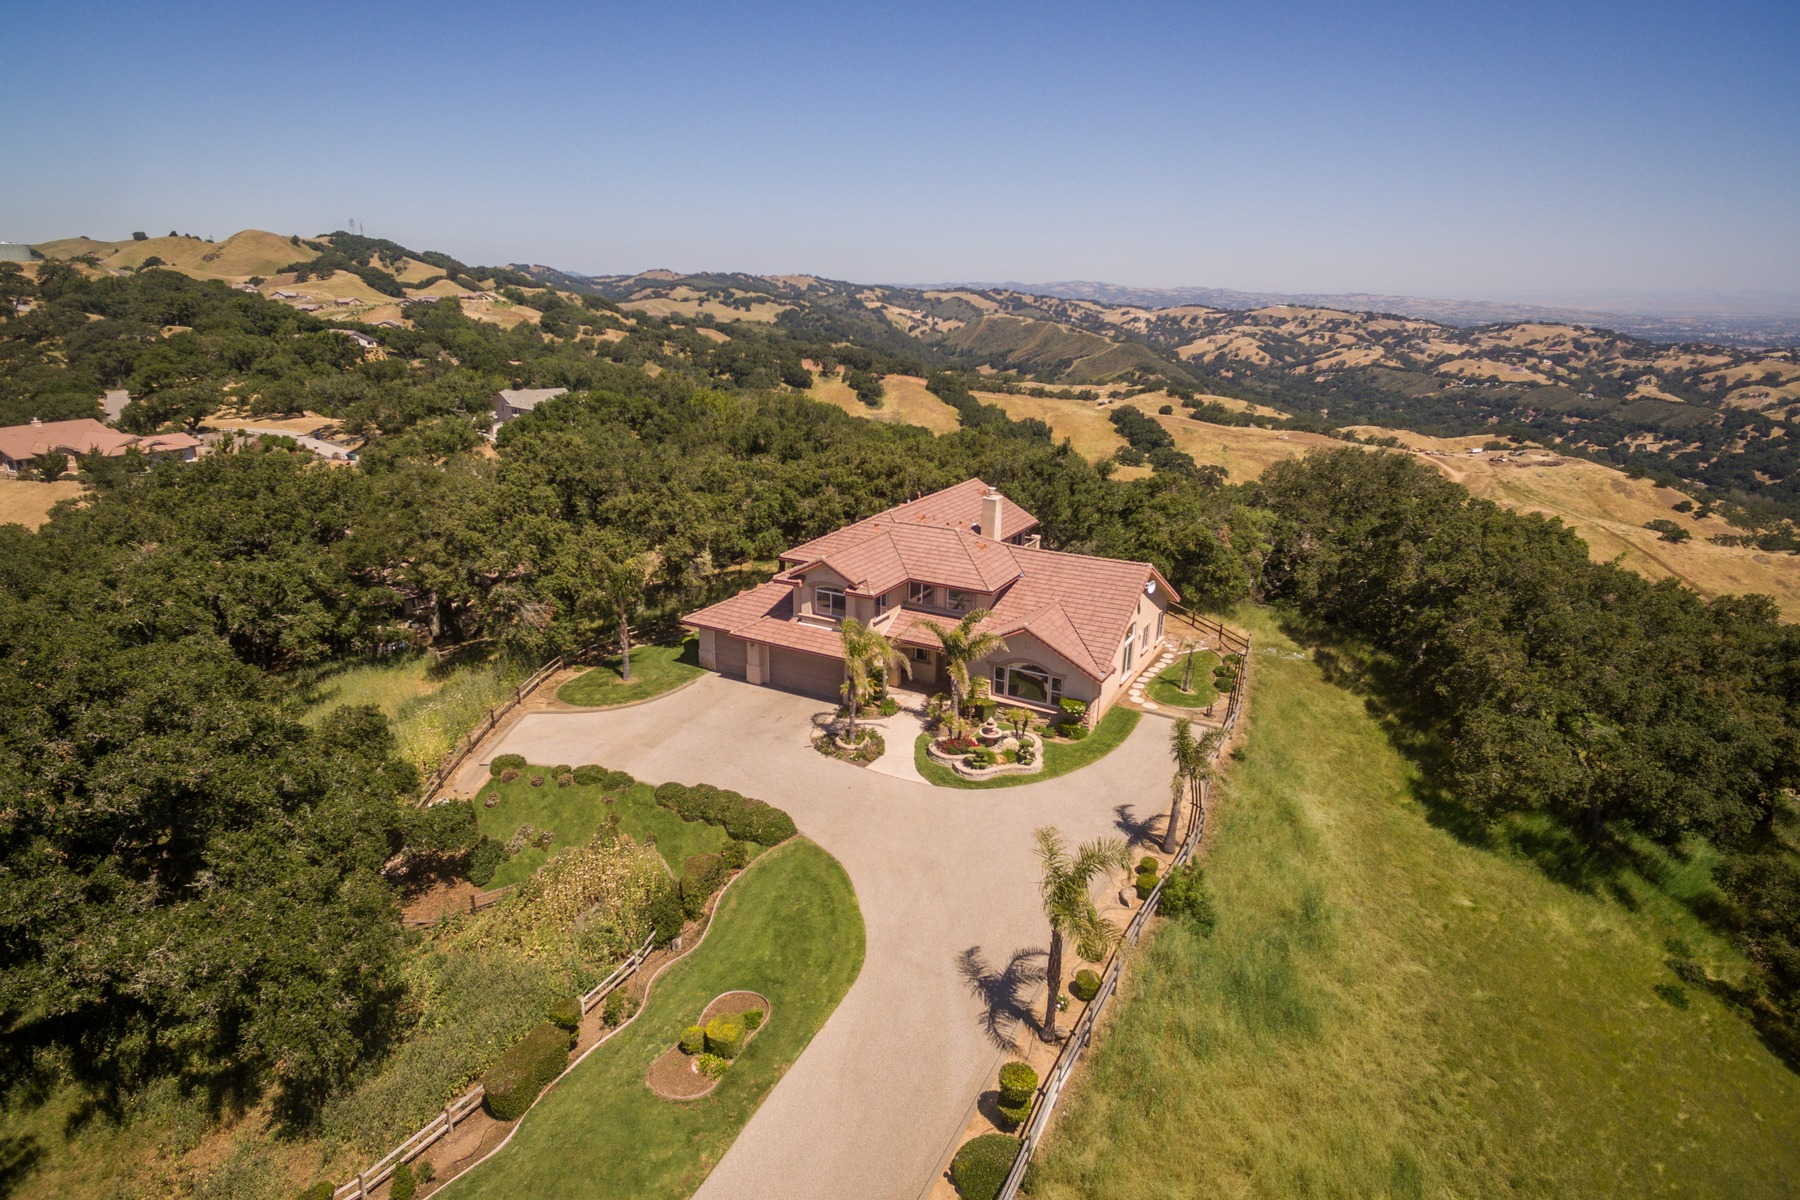 Single Family Home for Sale at Private Hilltop Escape 12275 San Marcos Rd Atascadero, California 93422 United States